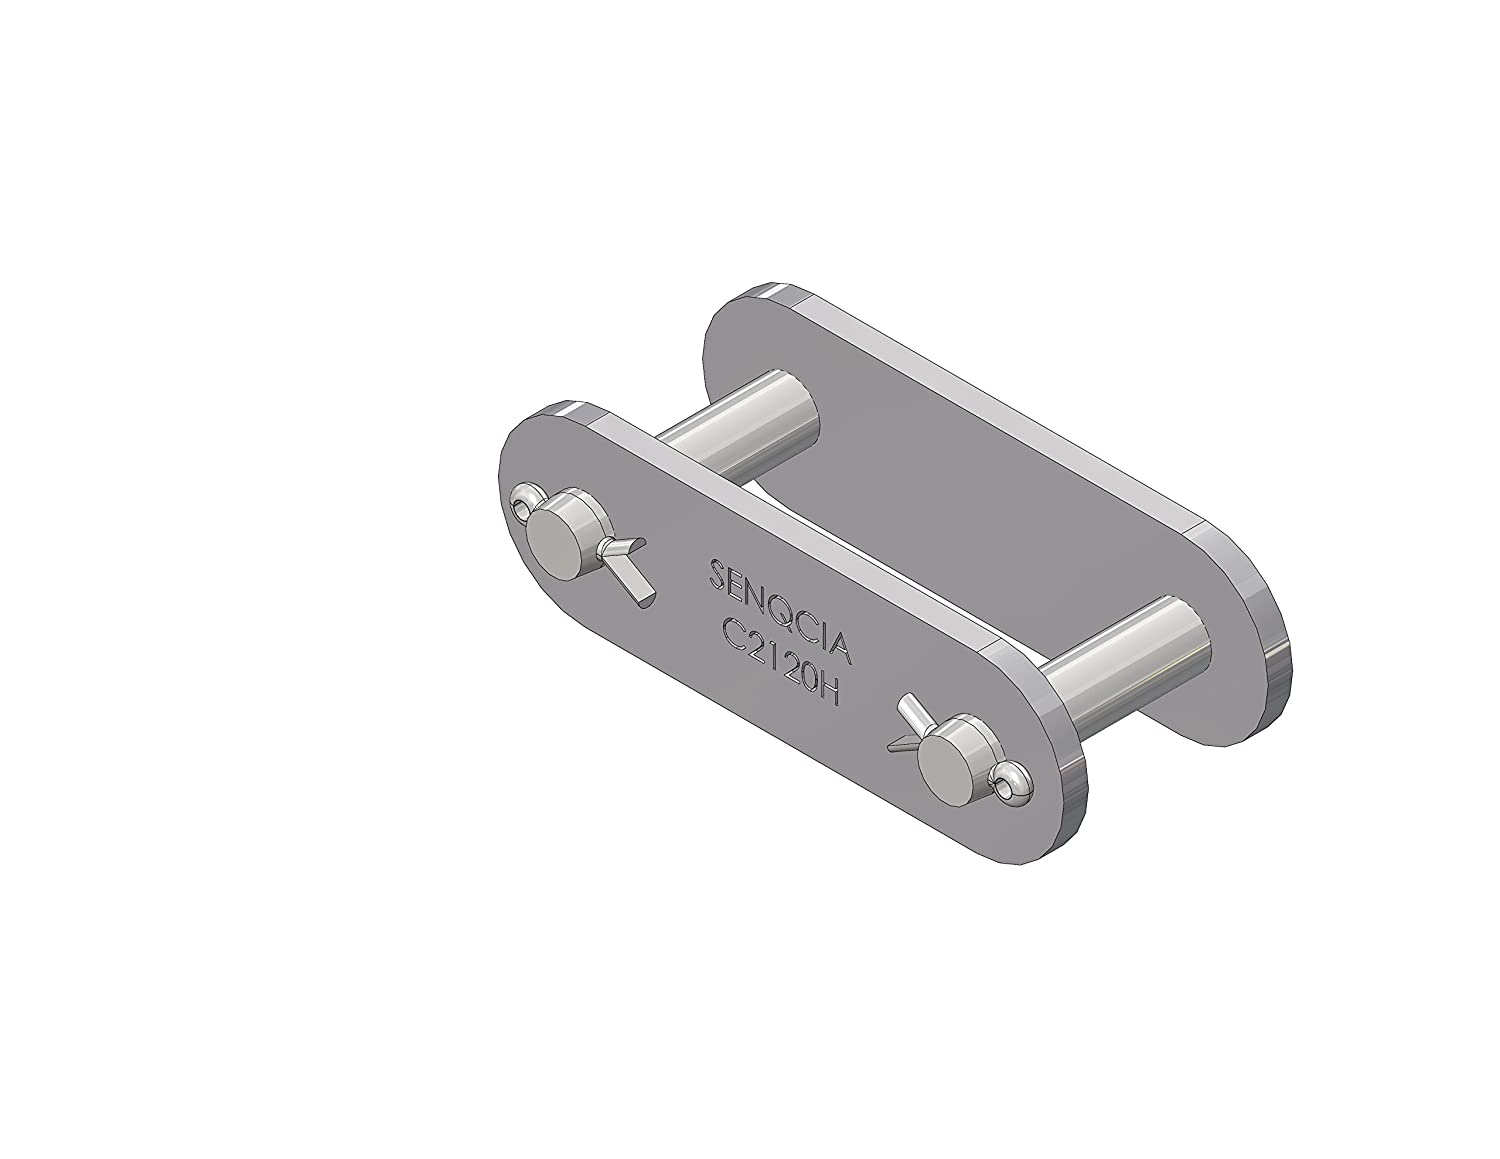 Cotter Type for Double Pitch Chain 4.38 Length 3 Pitch Senqcia Inspire Series C2120CL Connecting Link Pack of 3